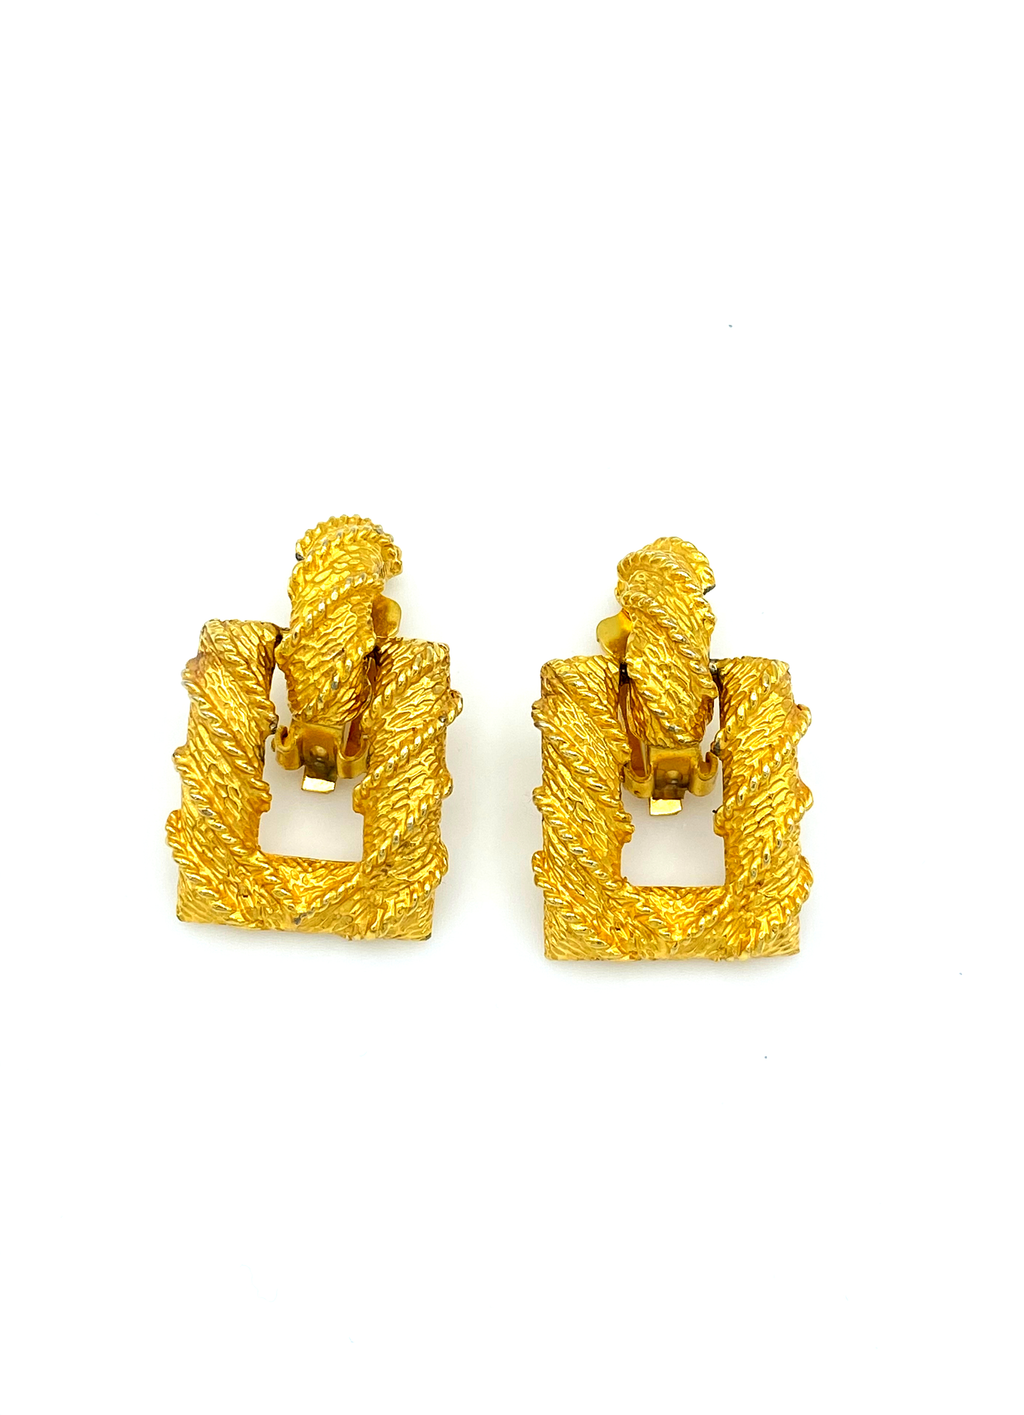 Kenneth Jay Lane Gold Wrapped Door Knocker Vintage Clip-On Earrings-Sustainable Fashion with Vintage Style-Trending Designer Fashion-24 Wishes